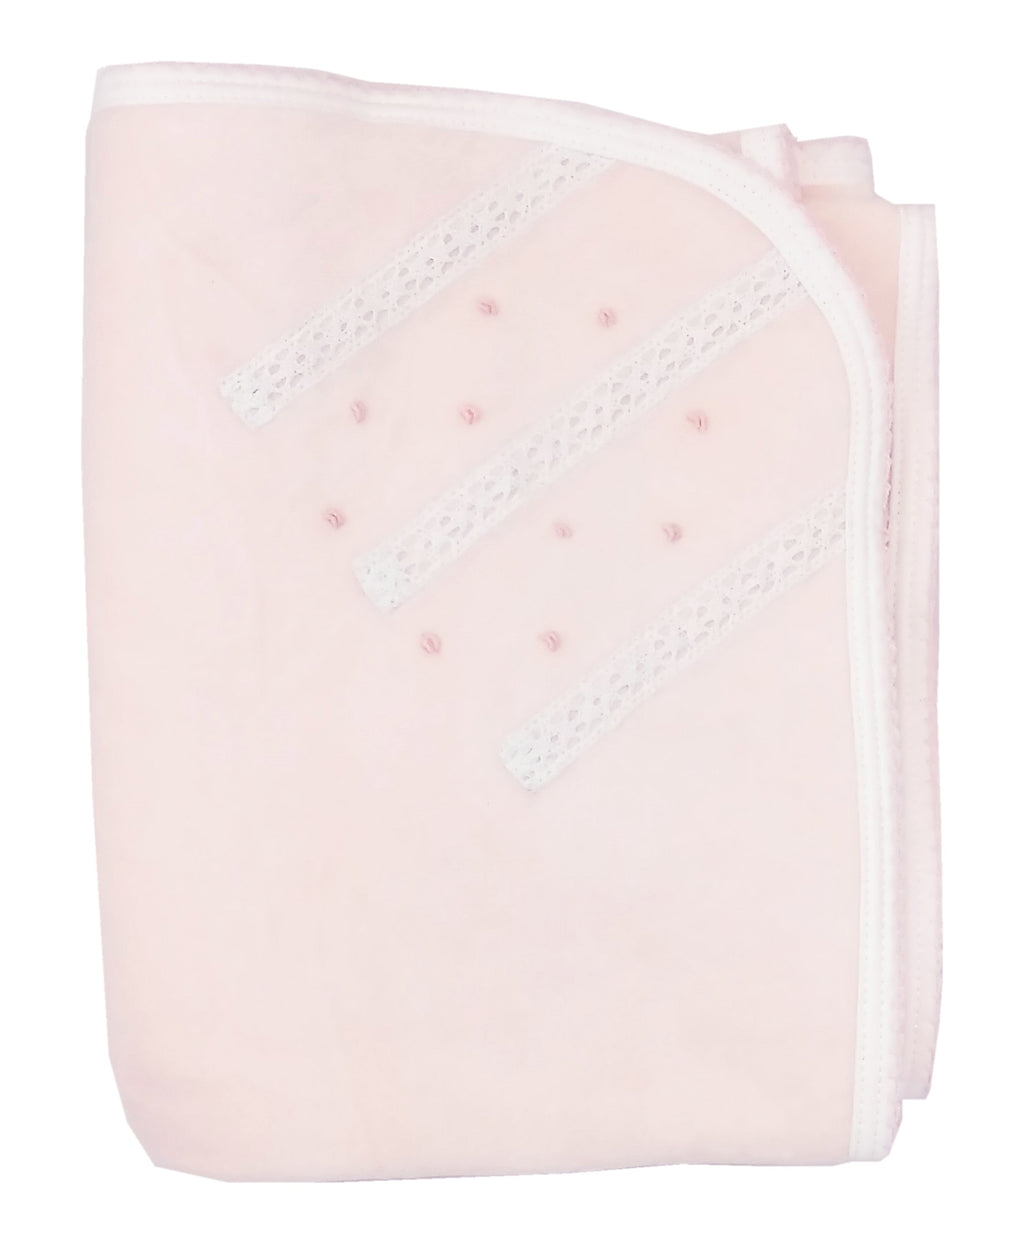 Pink Velour Lace and Flowers Blanket - Little Threads Inc. Children's Clothing